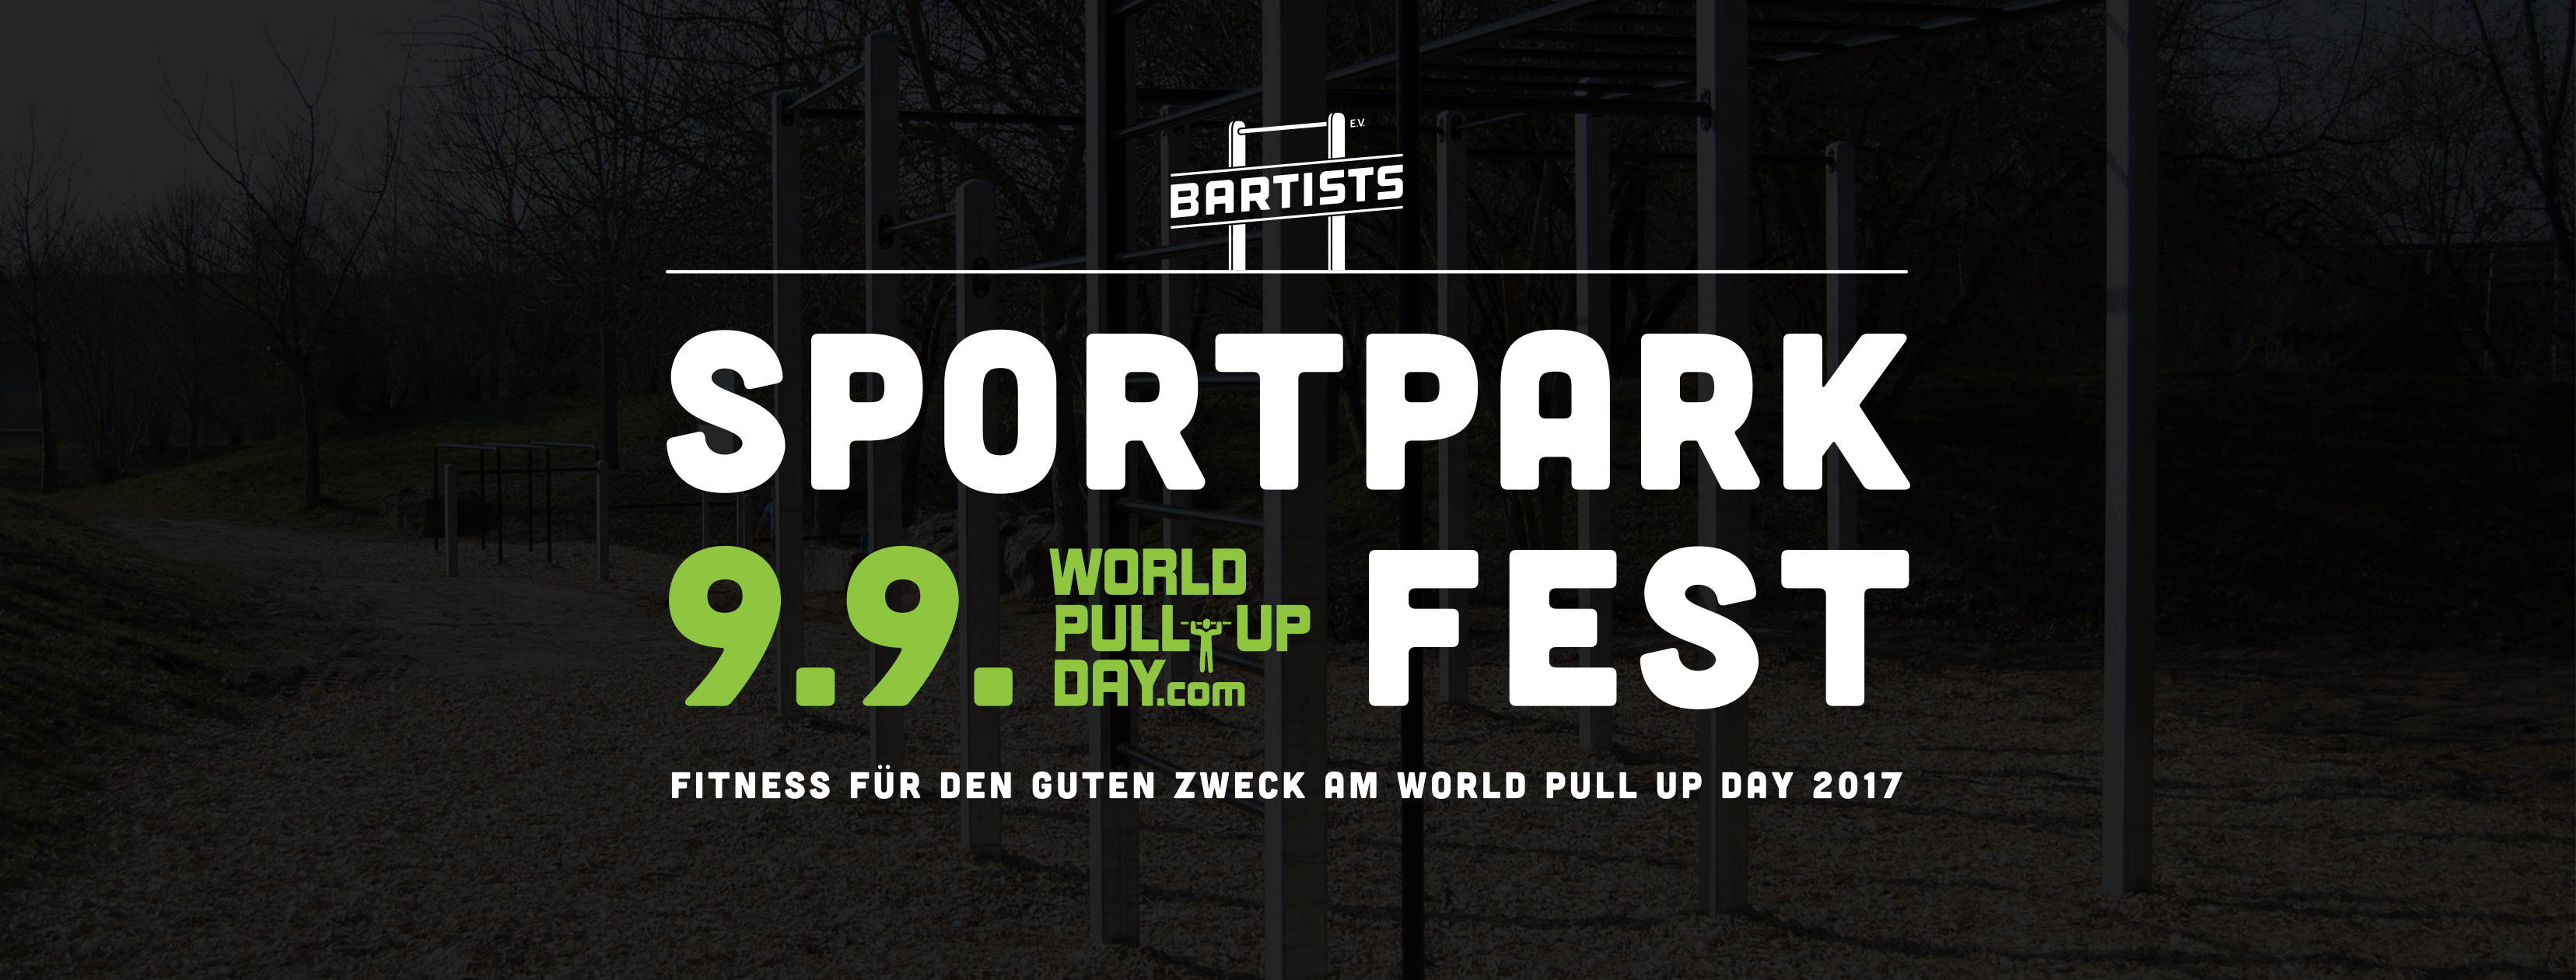 Sportparkfest am World Pull Up Day 2017